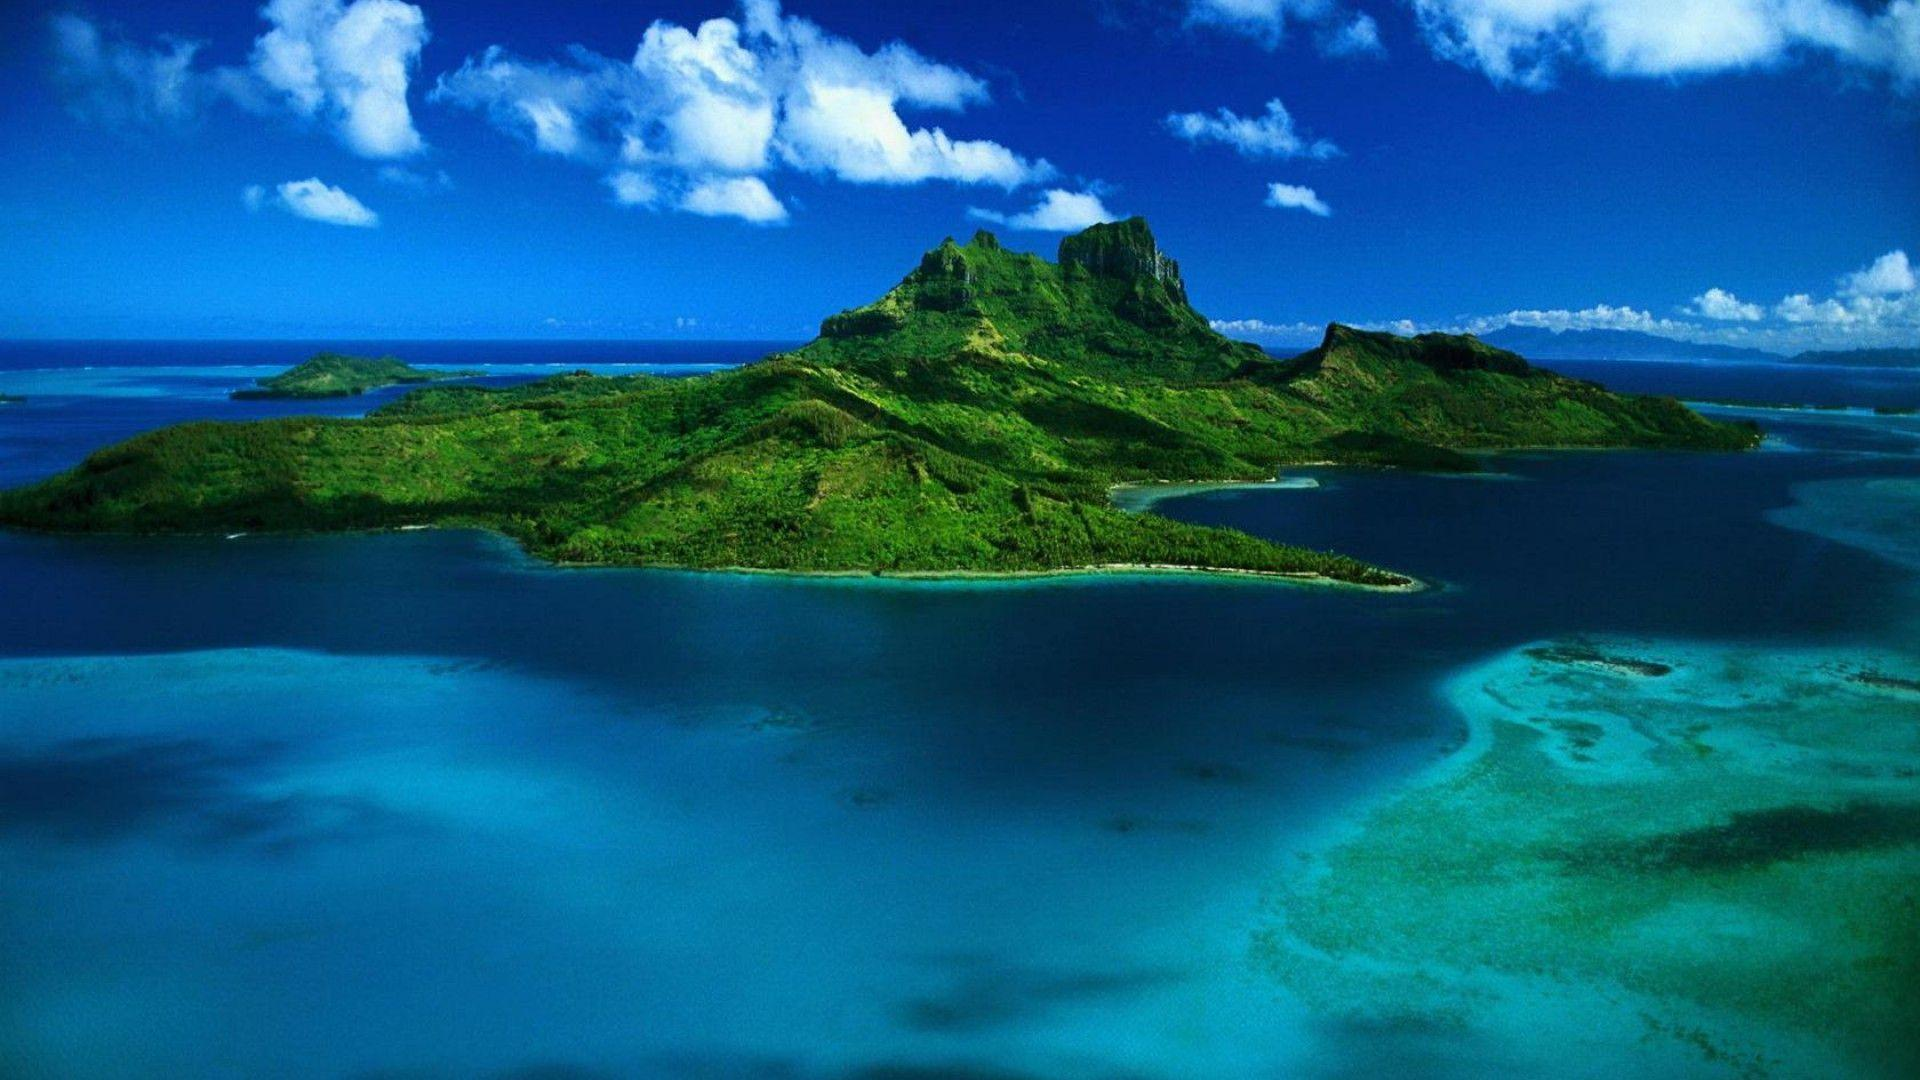 Island Wallpapers 1920x1080